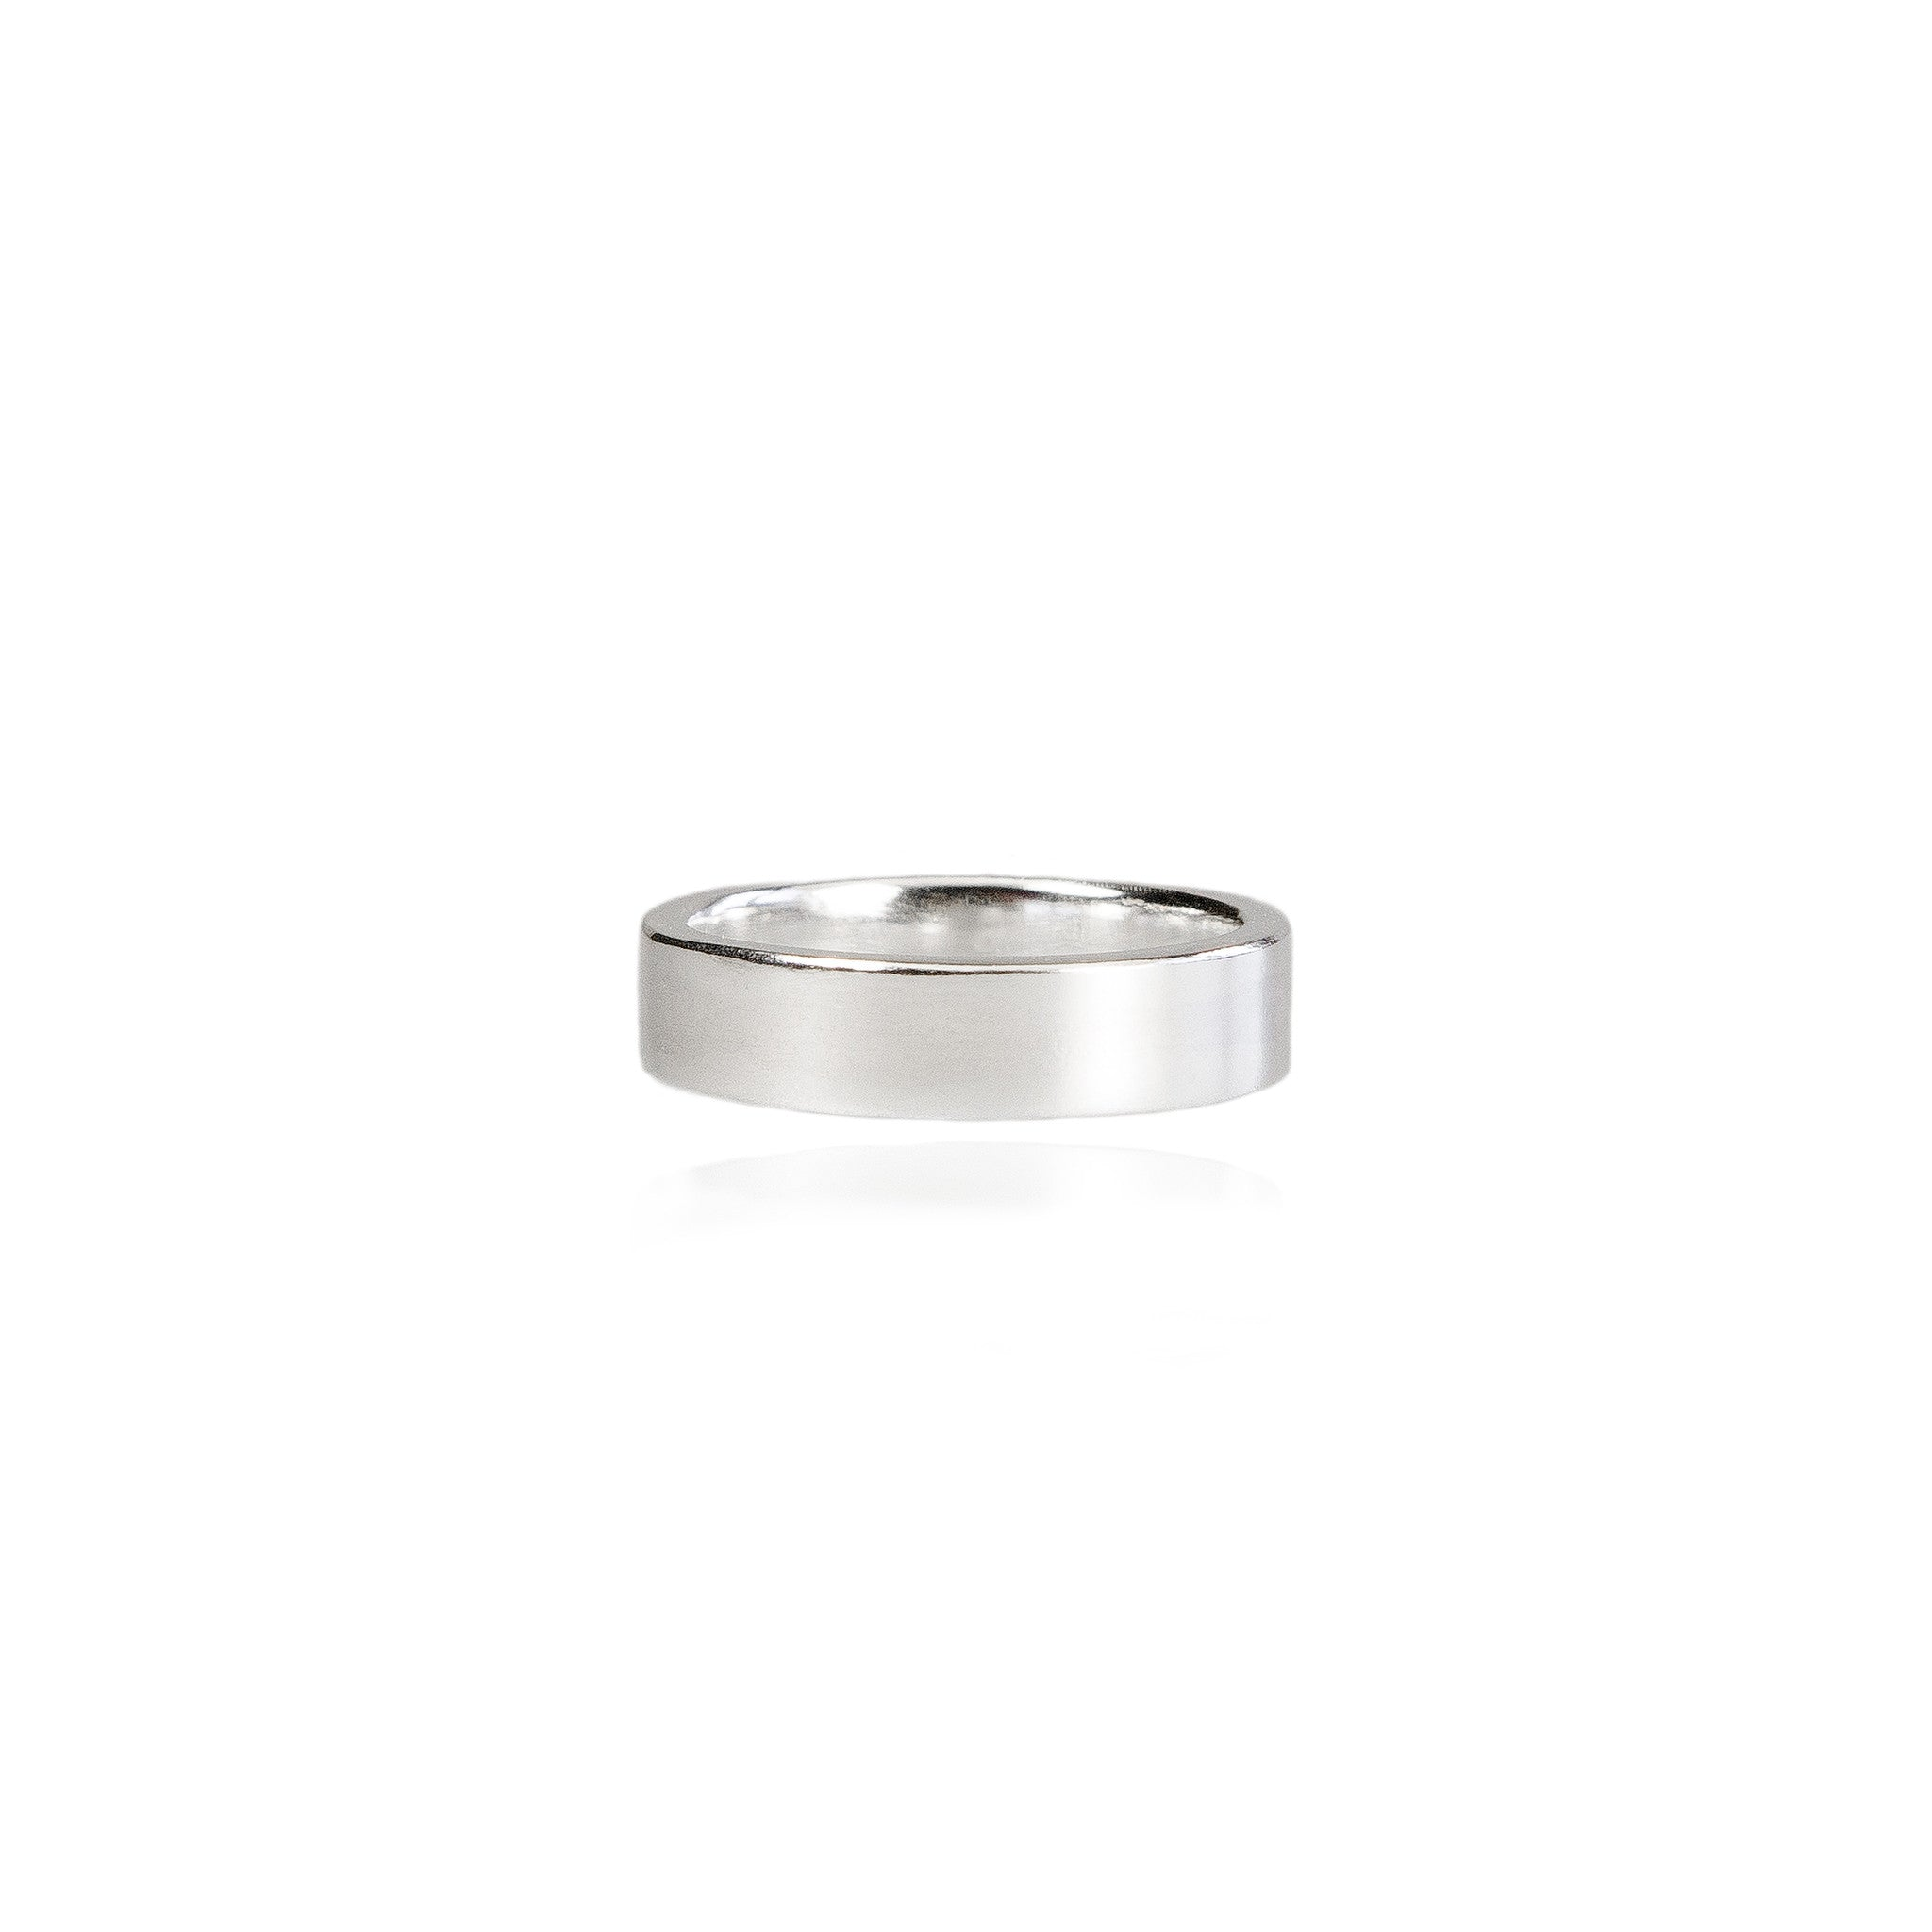 5mm Flat Wedding Ring in 18ct Gold